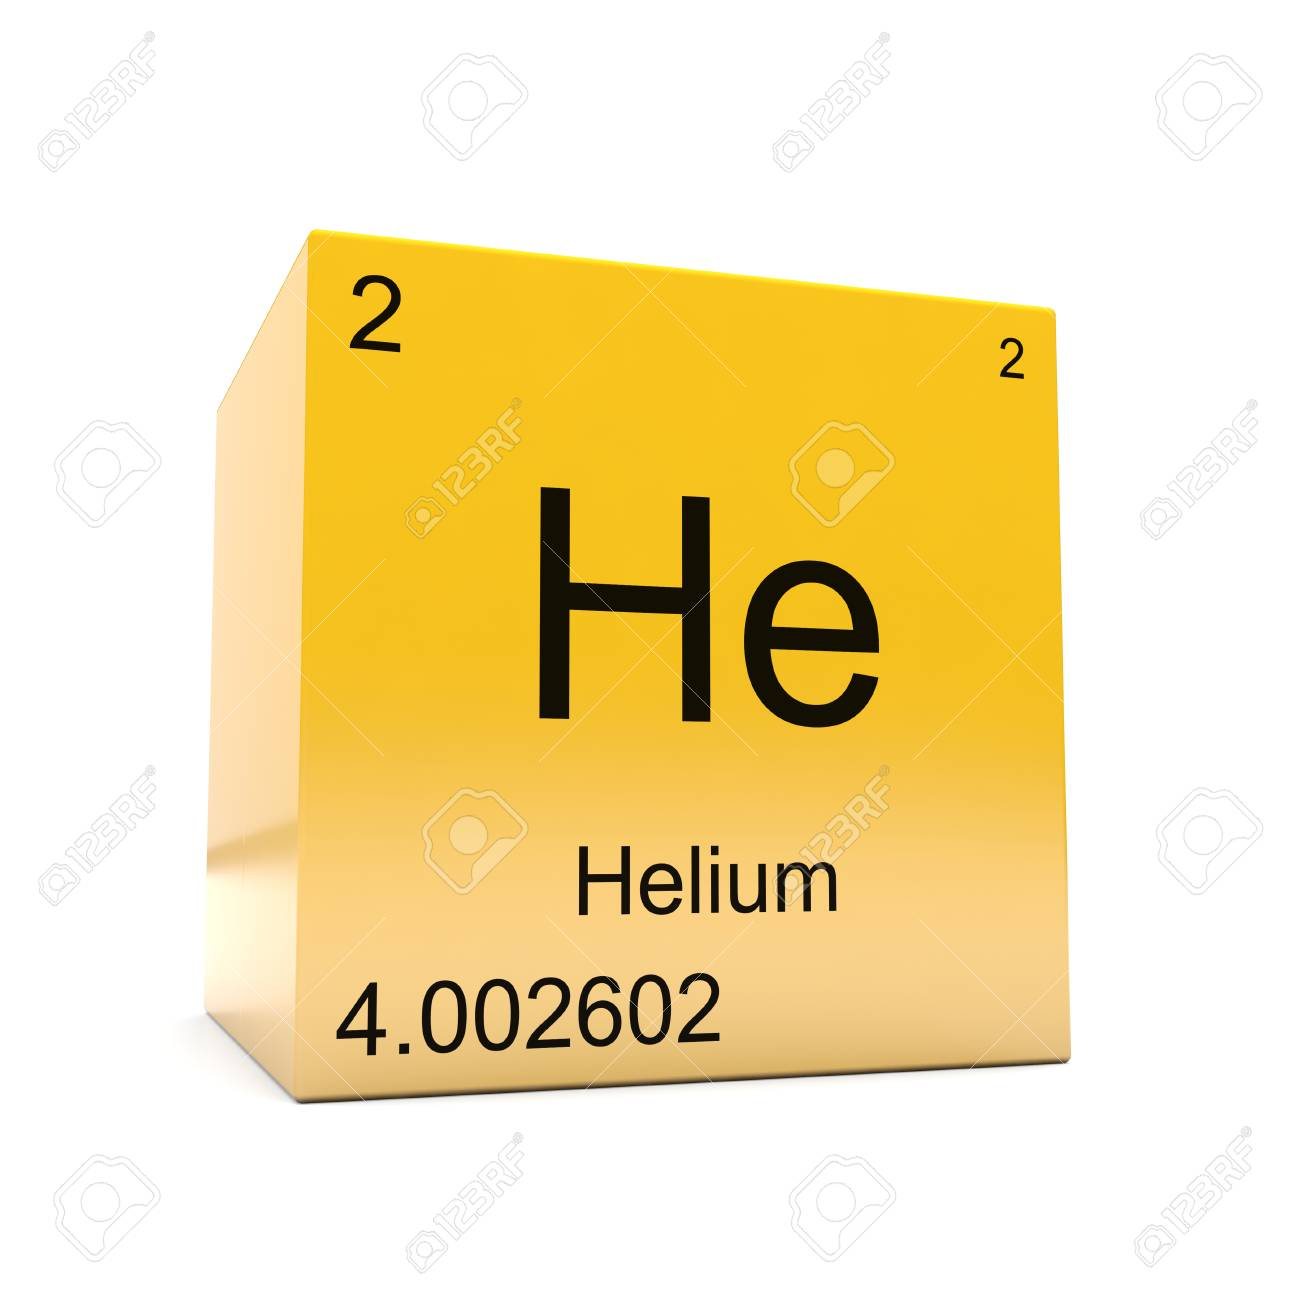 Helium Chemical Element Symbol From The Periodic Table Displayed